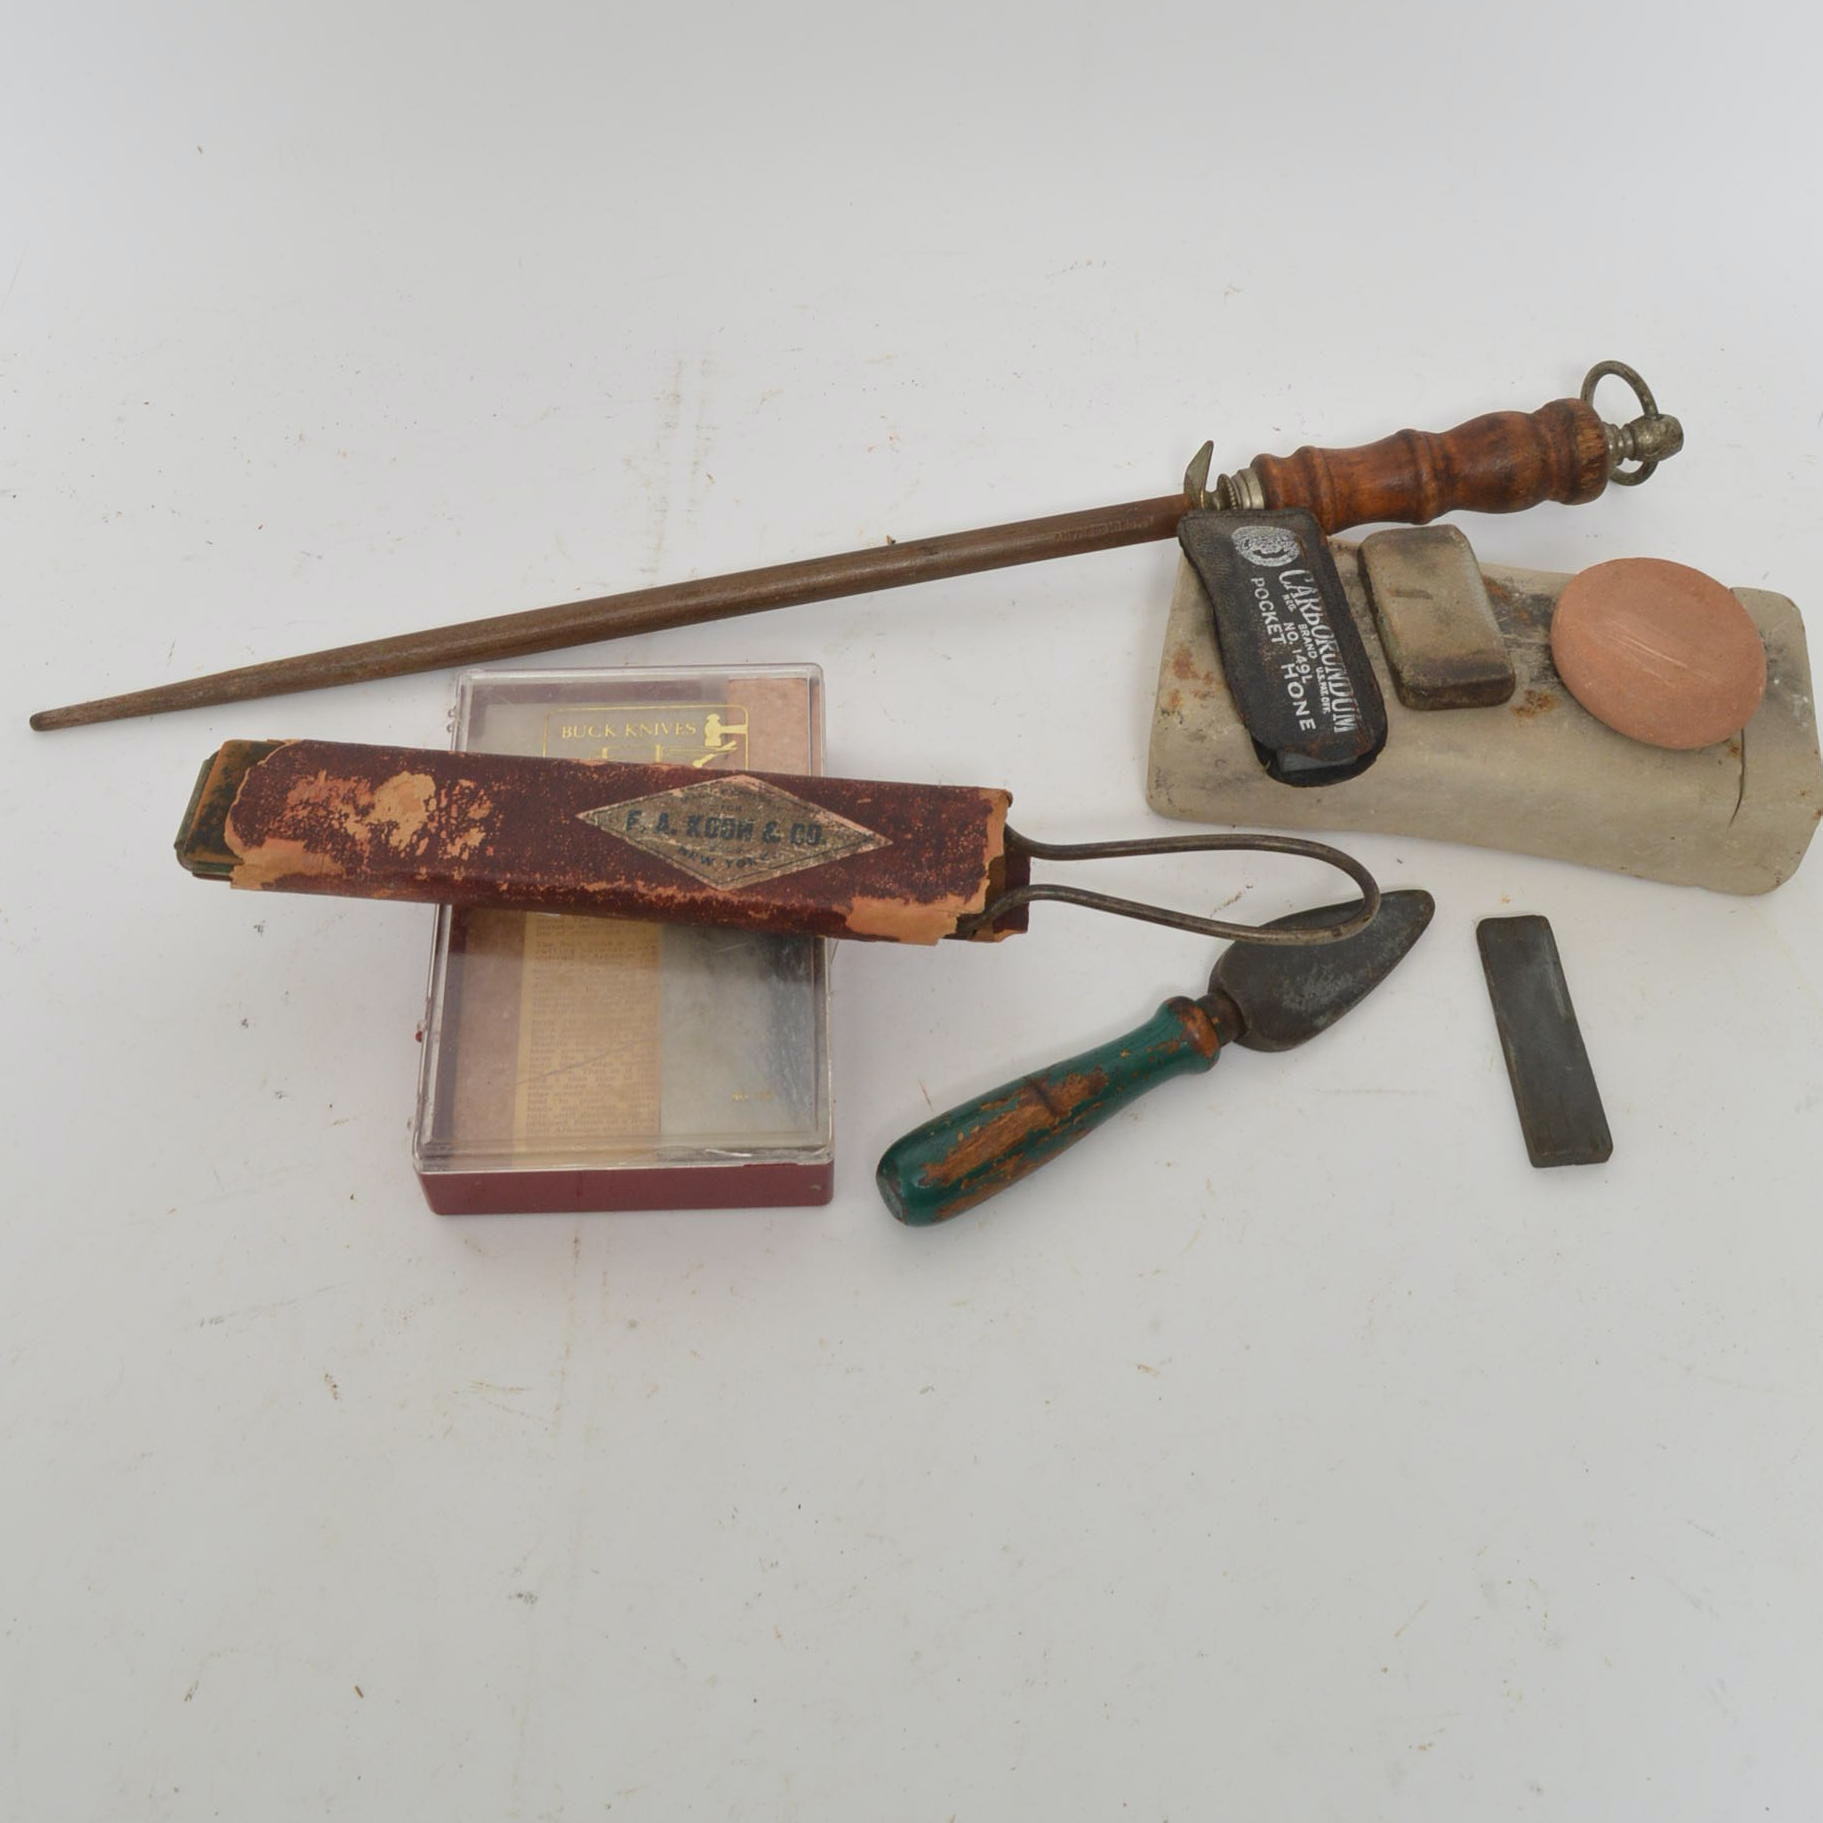 Vintage Sharpening Stones and Tools